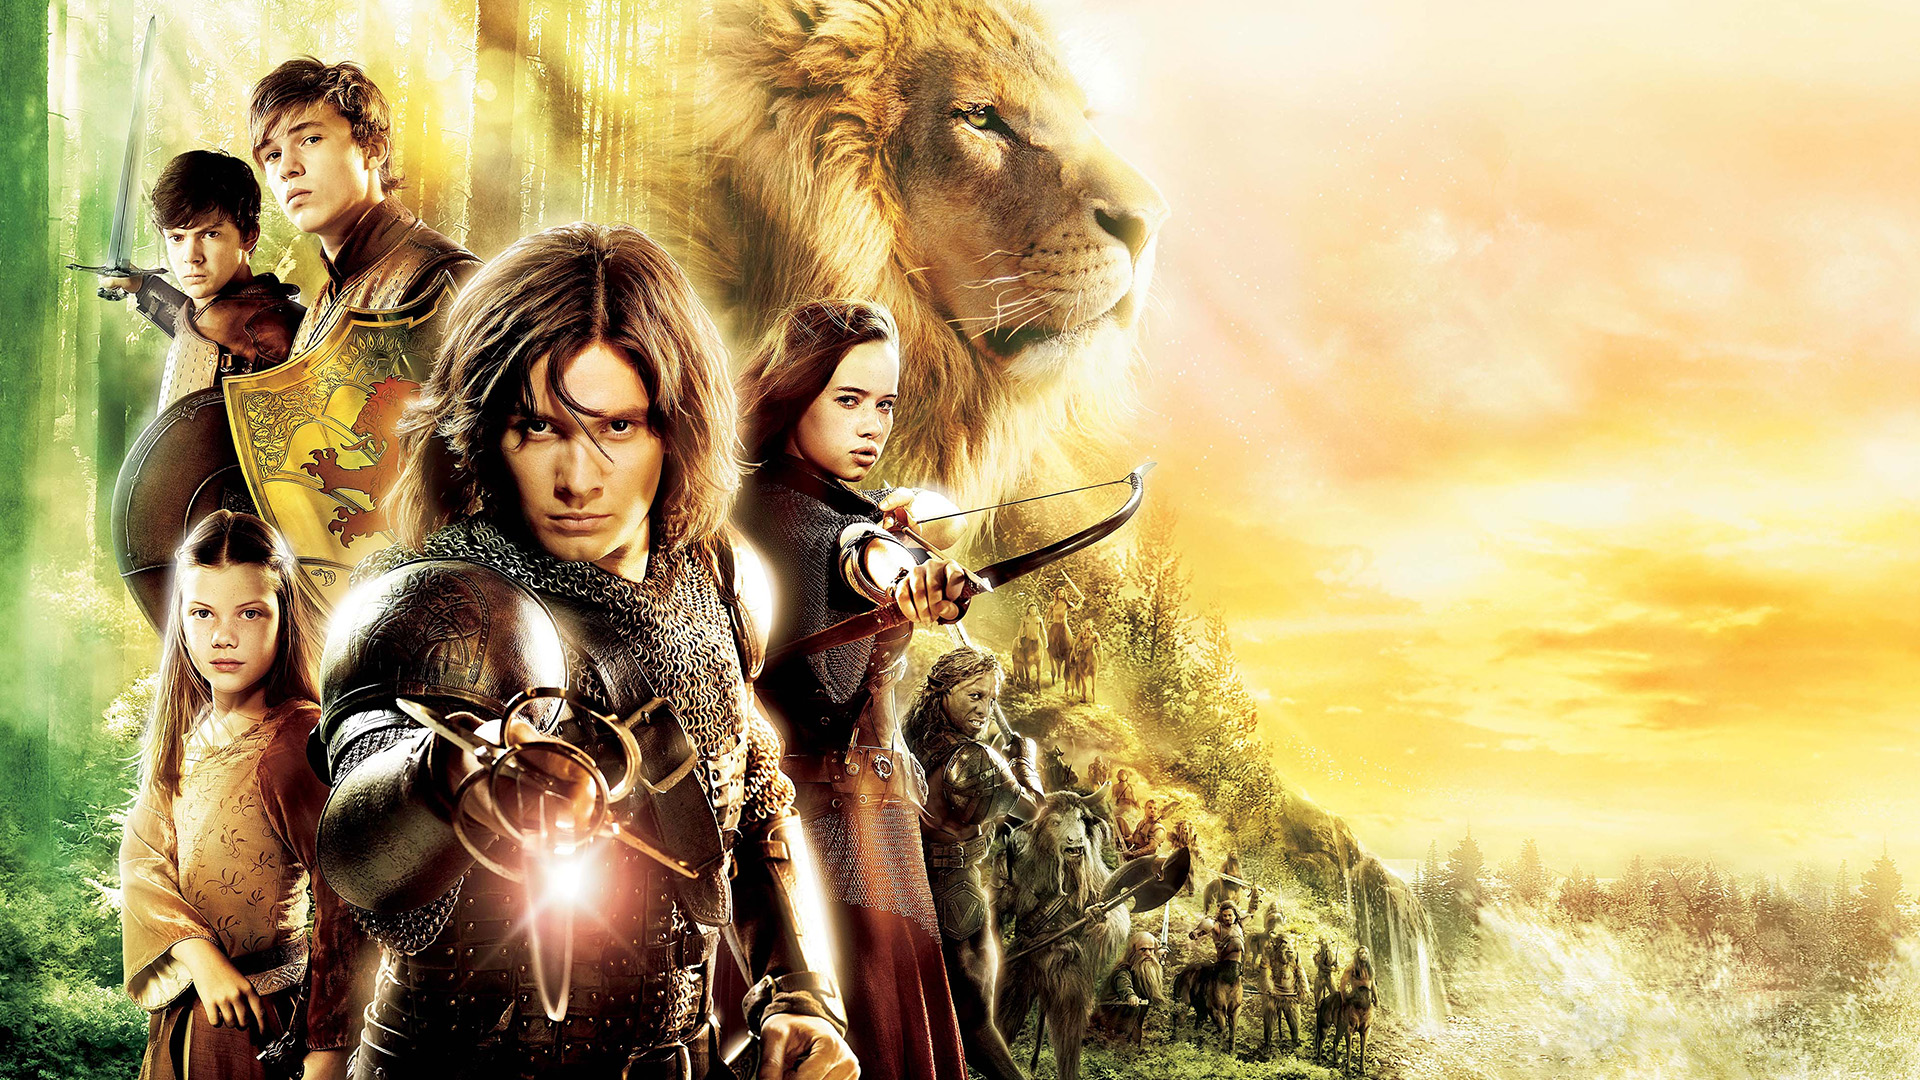 Narnia Wallpaper HD Backgrounds Images Pictures 1920x1080 1920x1080